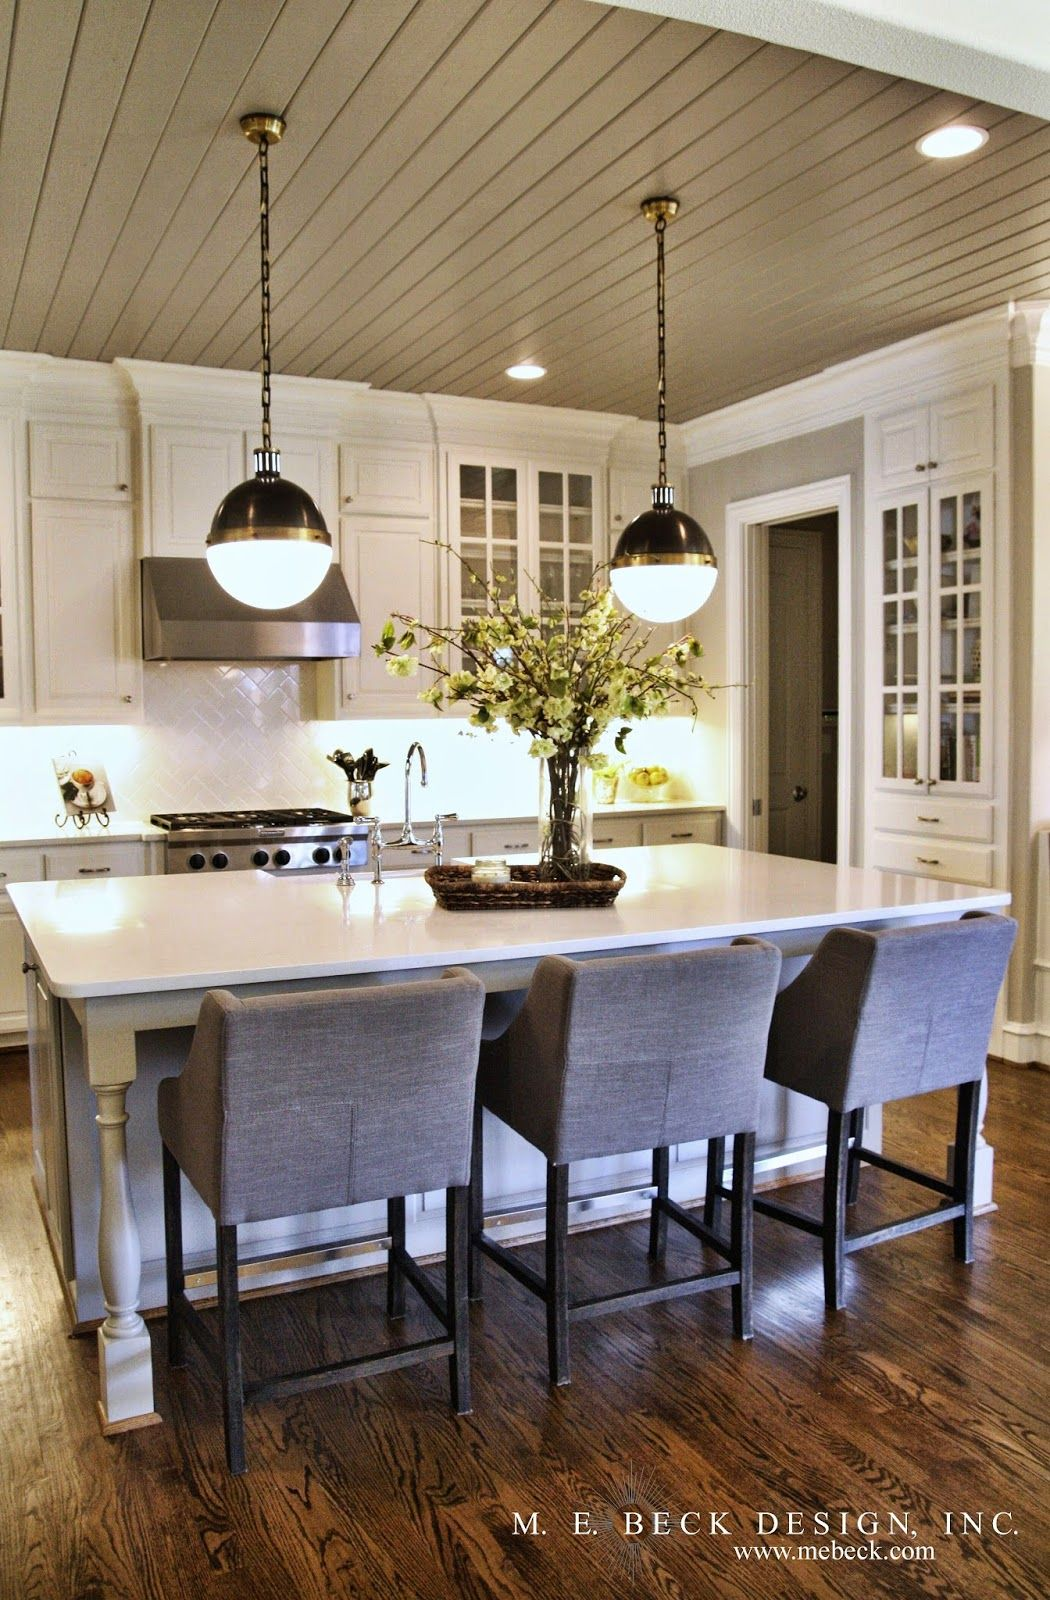 Live Beautifully Dallas Project The Kitchen Home Kitchens Kitchen Layout Kitchen Remodel